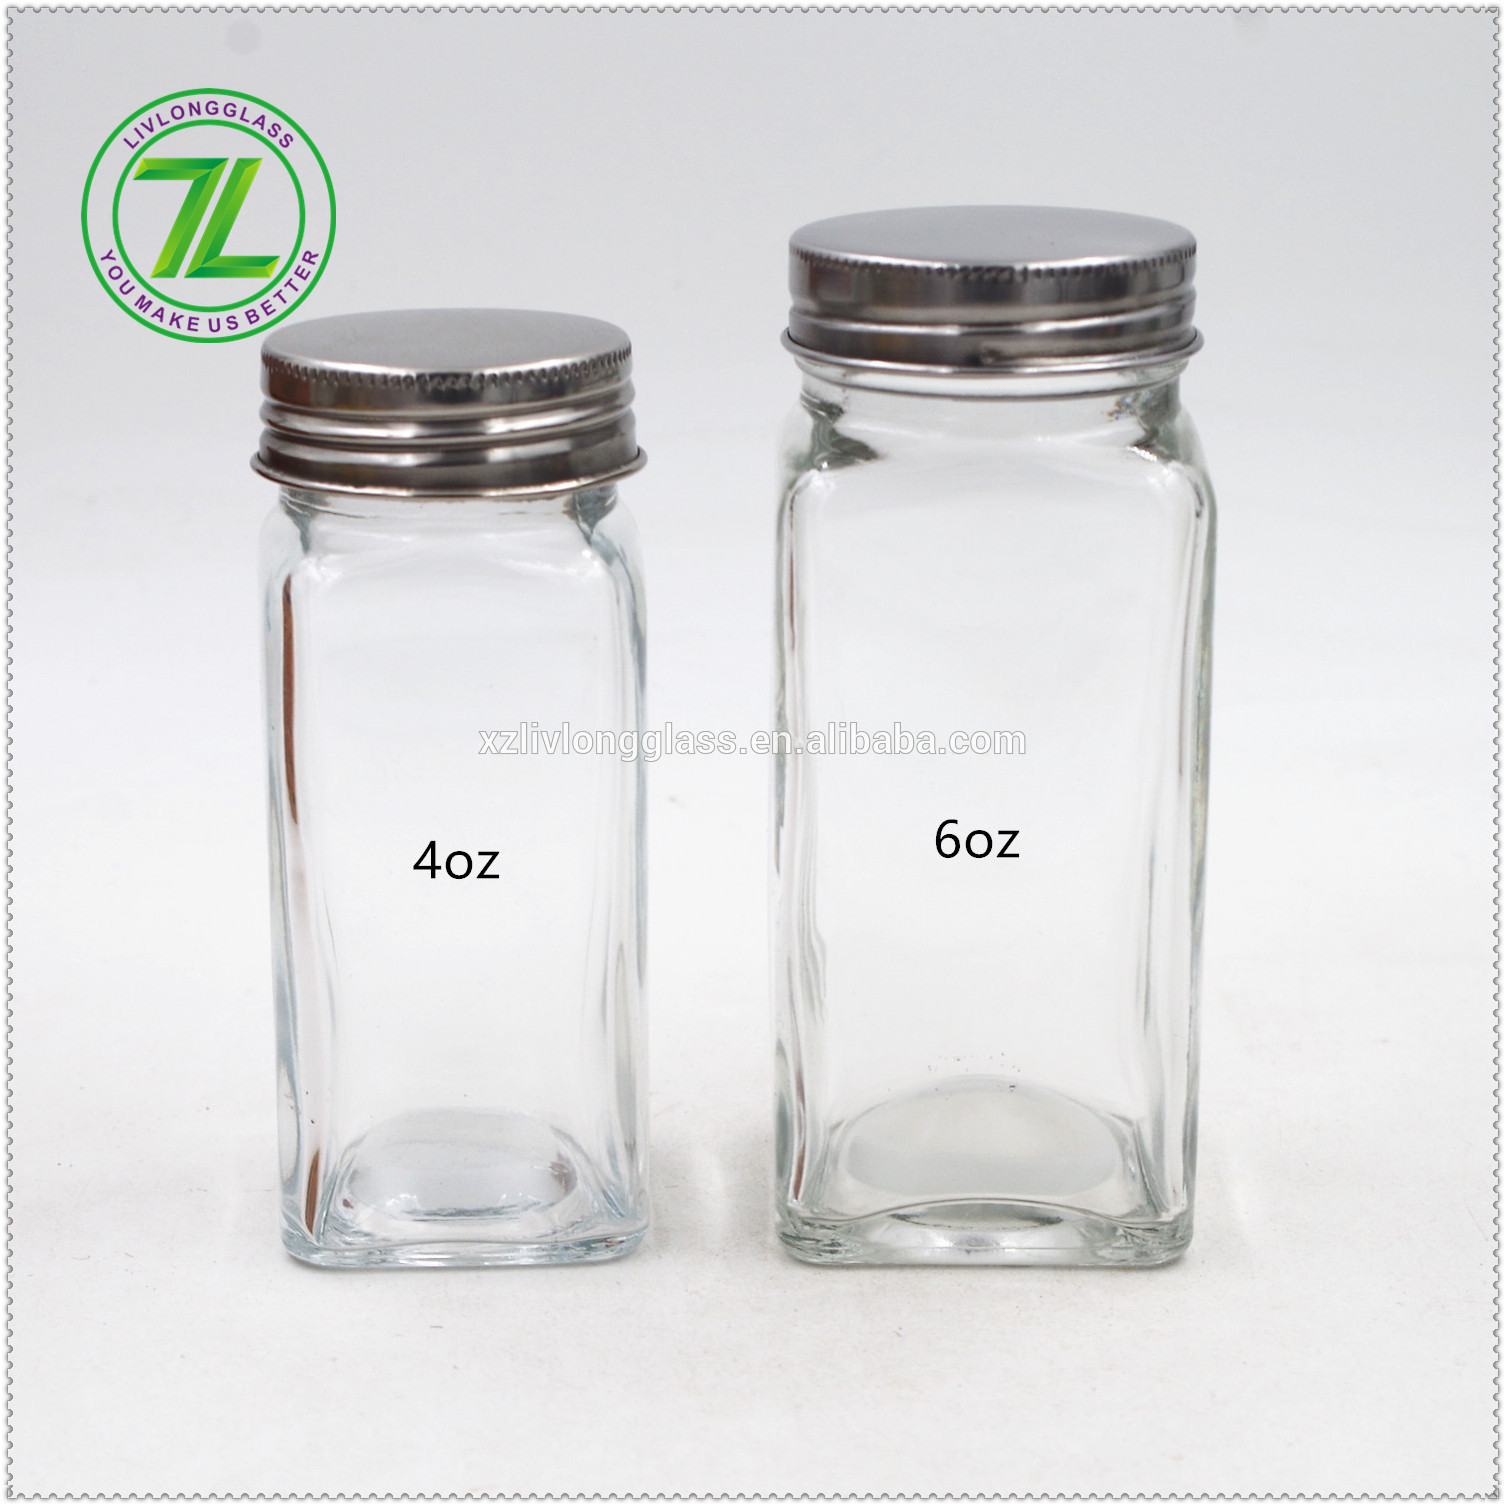 Glass 4oz Spice Jar Set with Silver Metal Lids Shaker Insert Tops 120ml wholesale